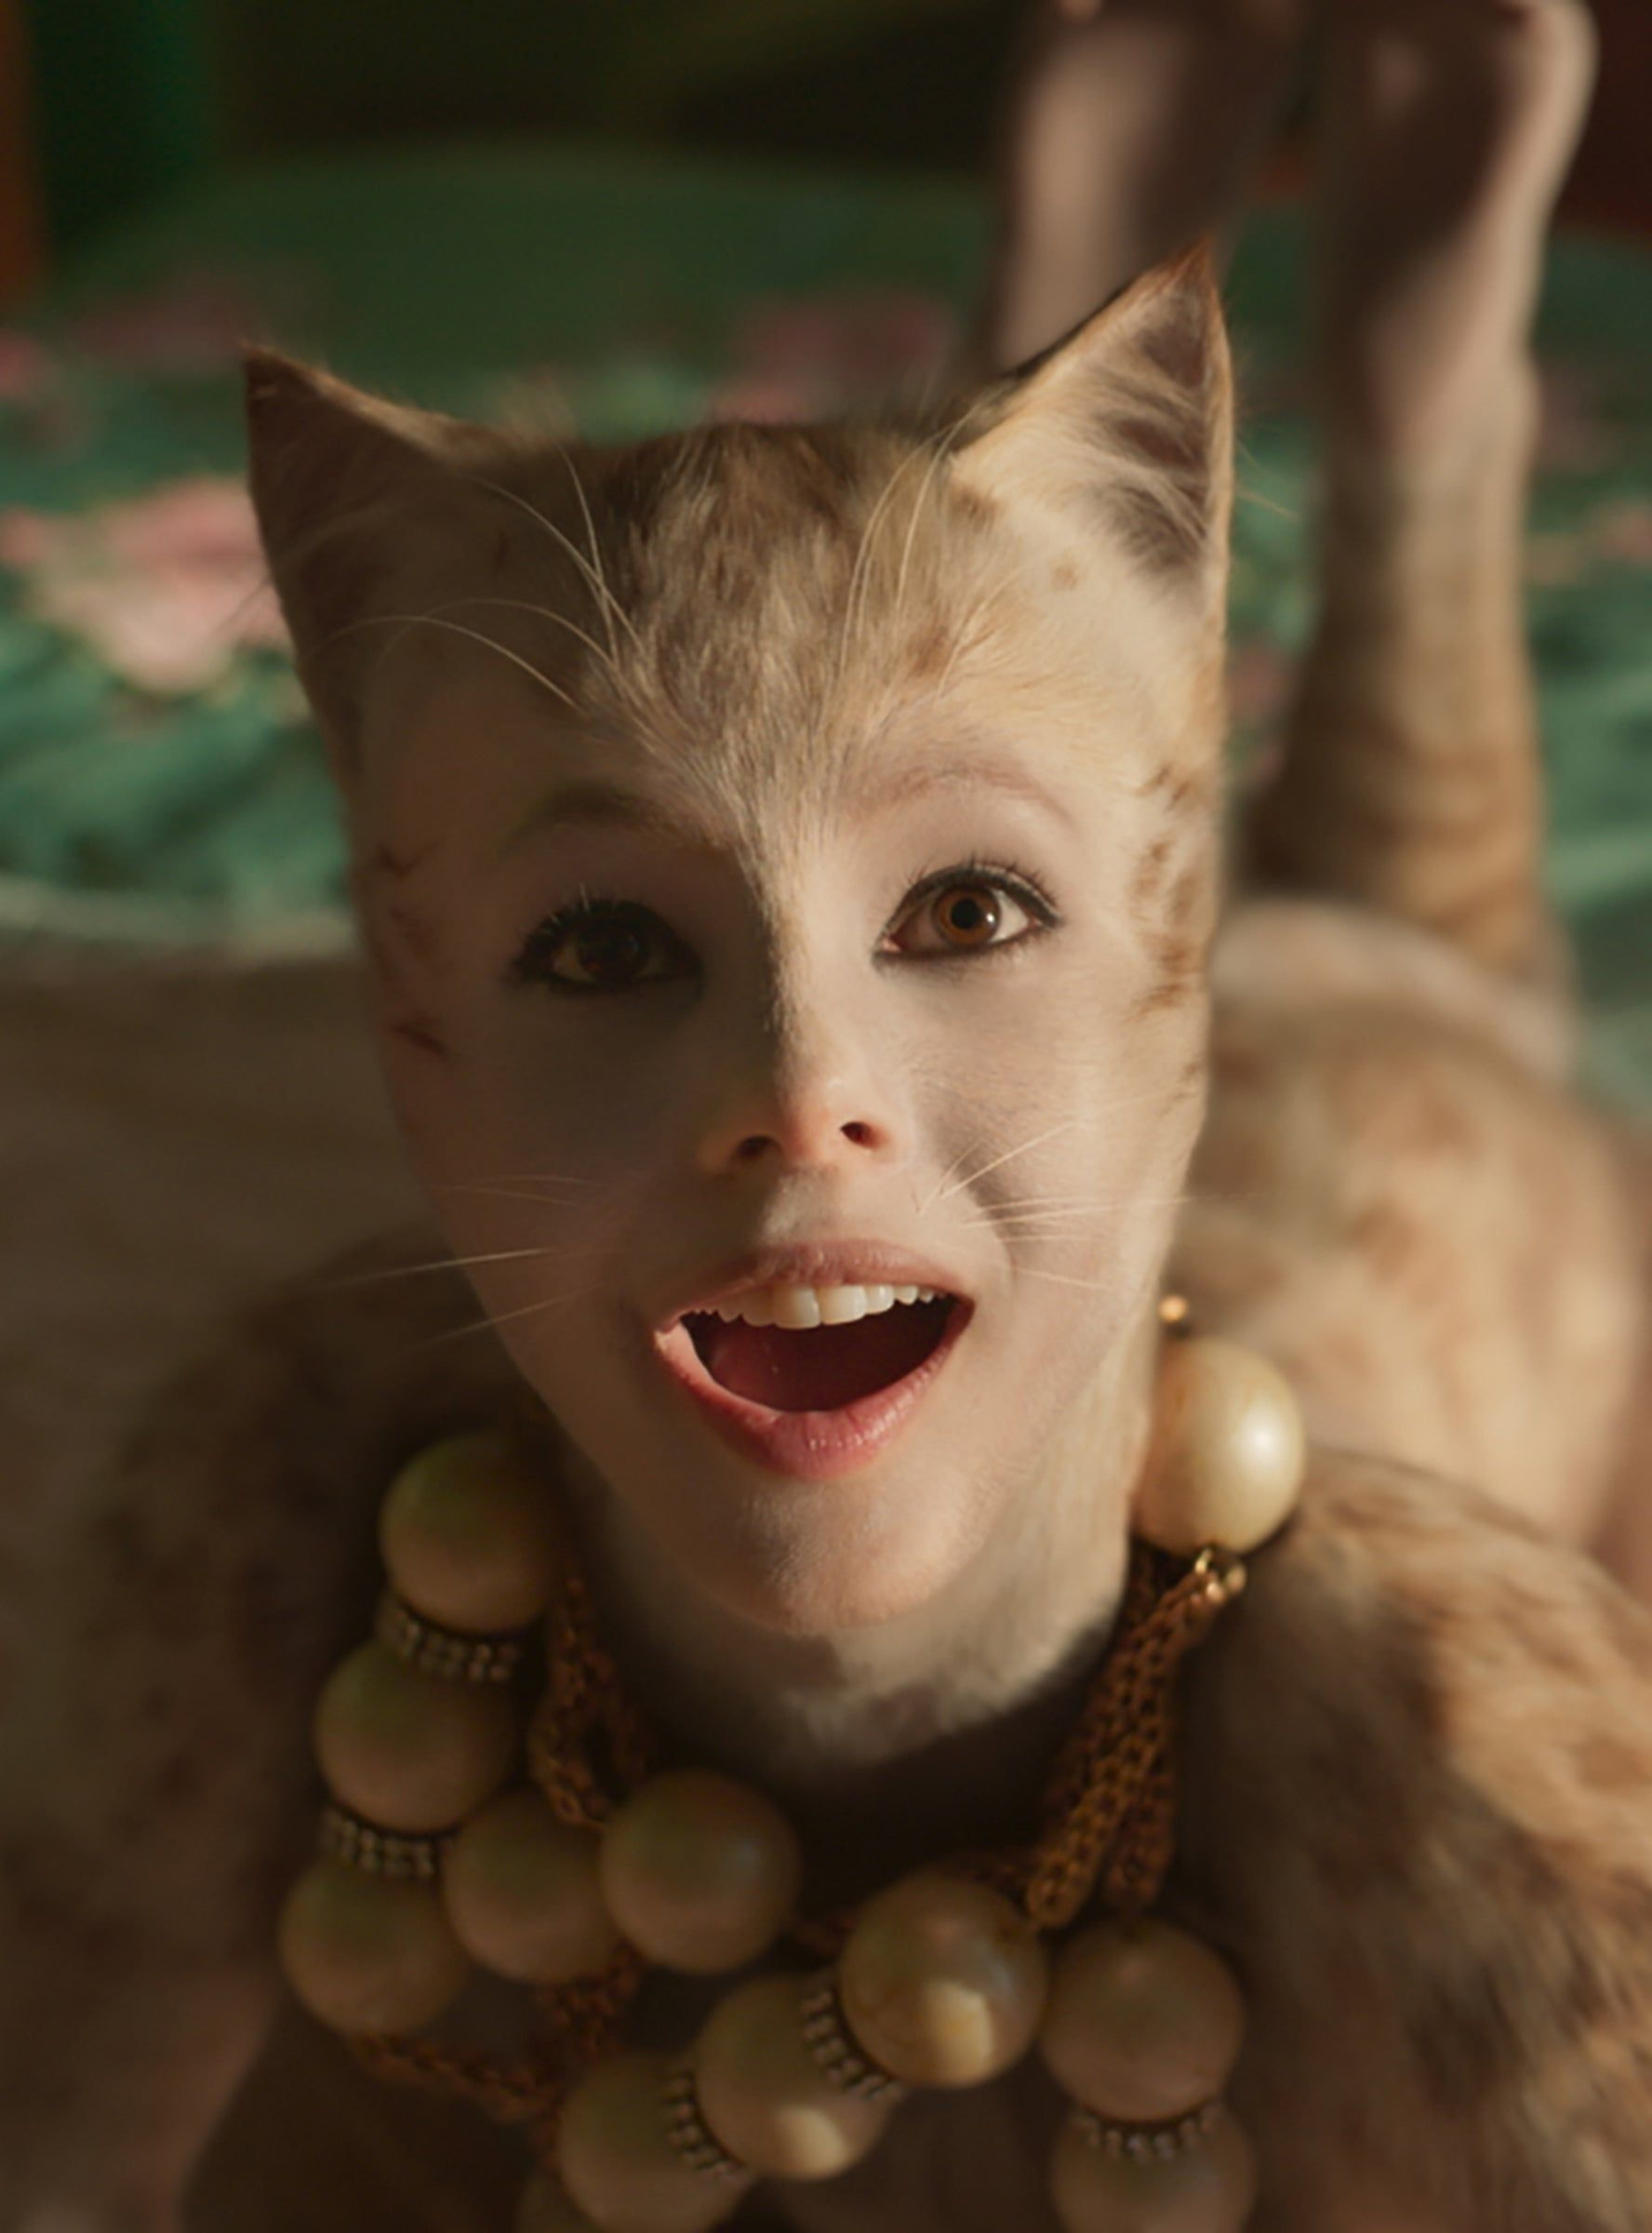 The First Reactions To The Cats Movie Are Predictably